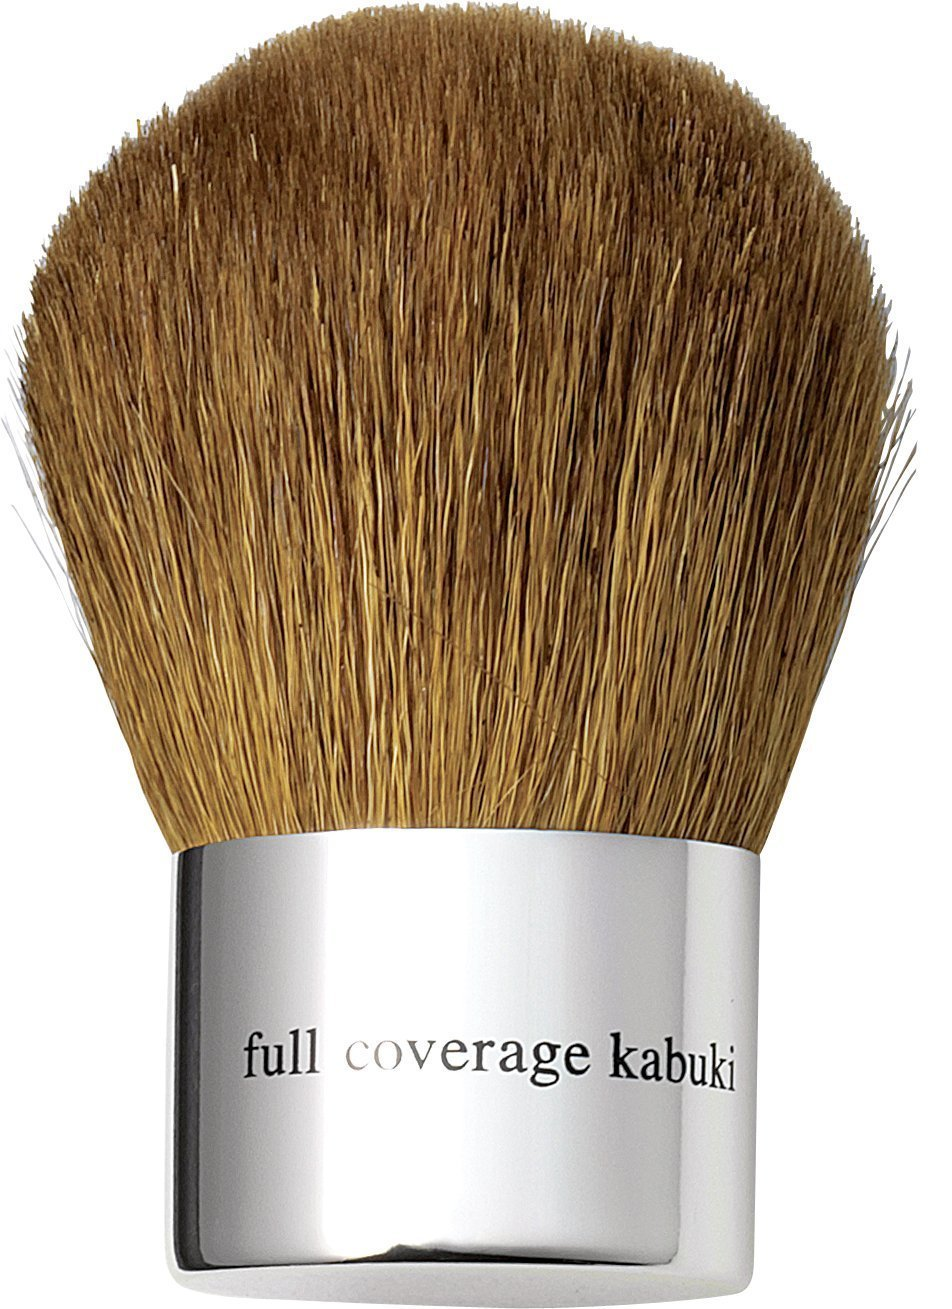 bareMinerals Bare Escentuals Full Coverage Kabuki Brush - Goat Hair - Small Enough To Fit Into Your Handbag - Lightweight Yet Perfect Application Of Loose Powders - Easy To Apply Full Cover Foundations - Hair Length 38mm